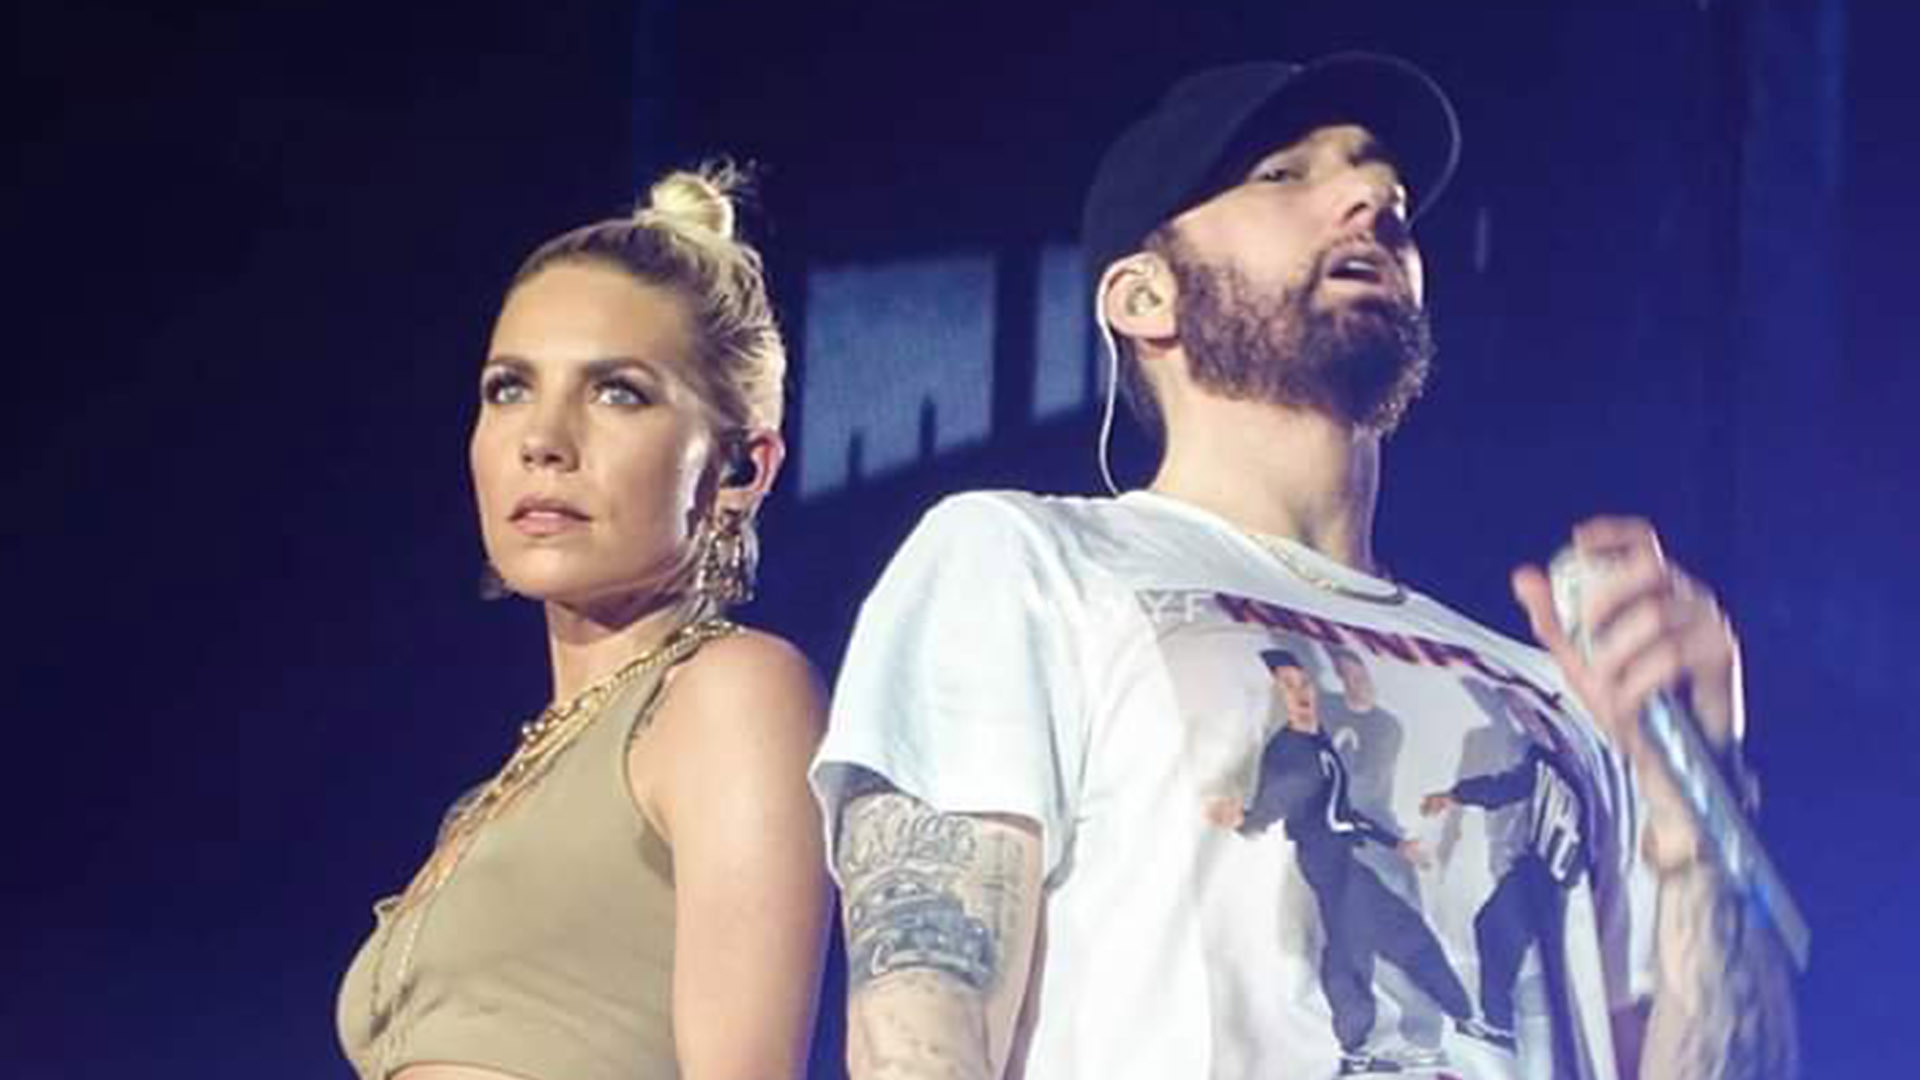 Eminem and Skylar Grey at Abu Dhabi, 25.10.2019 📸 @paulawyf